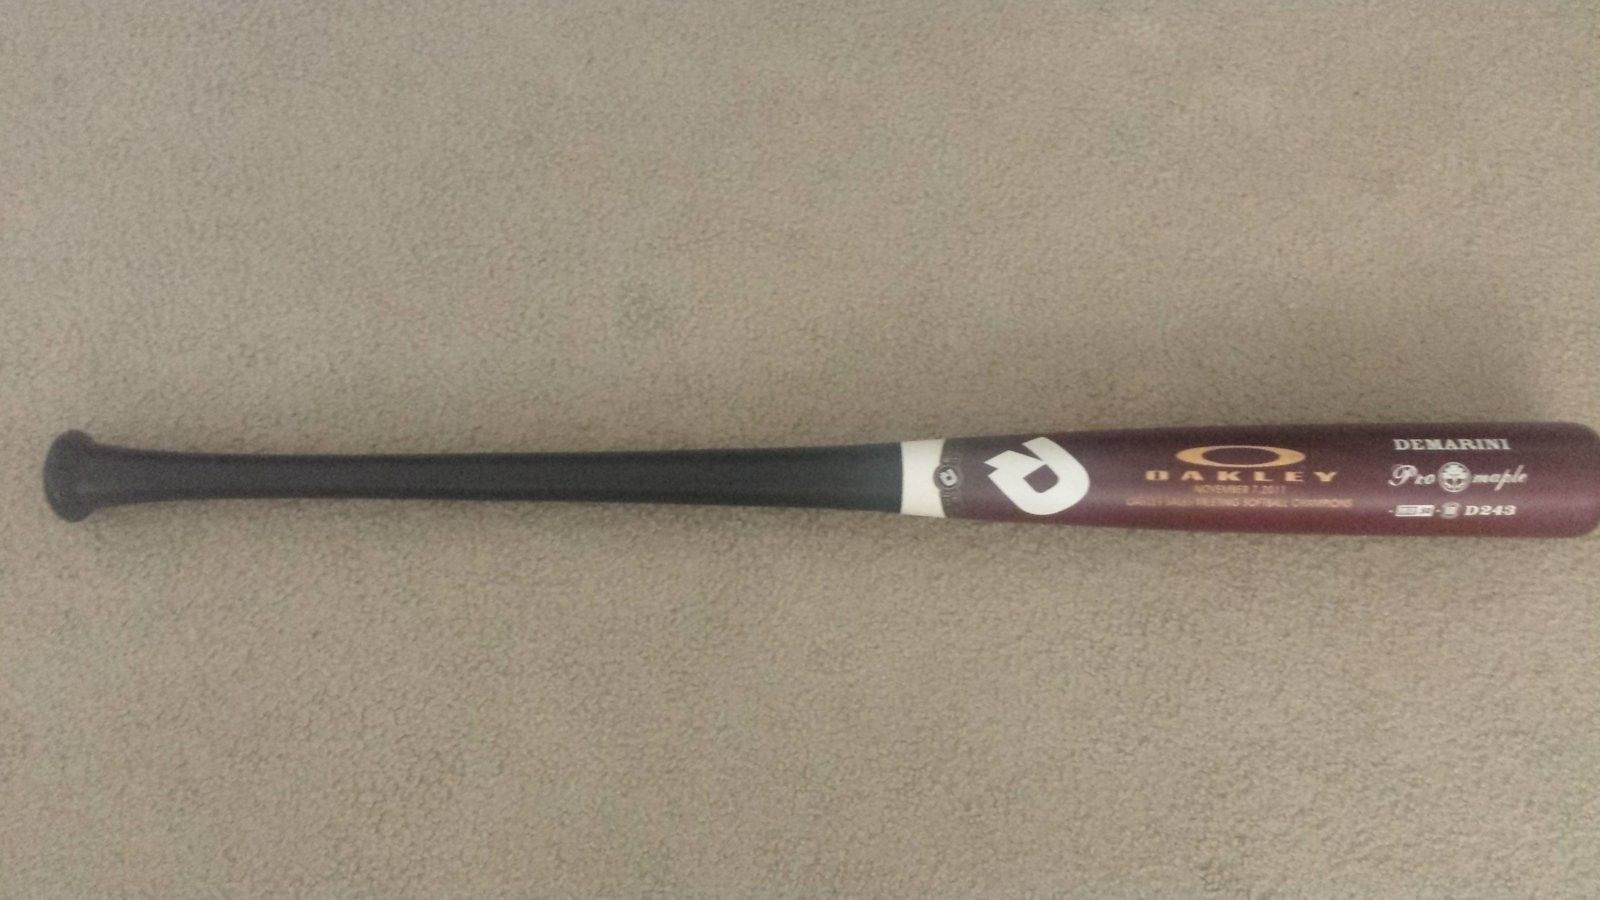 Oakley Baseball Bat - 20160602_113940.jpg